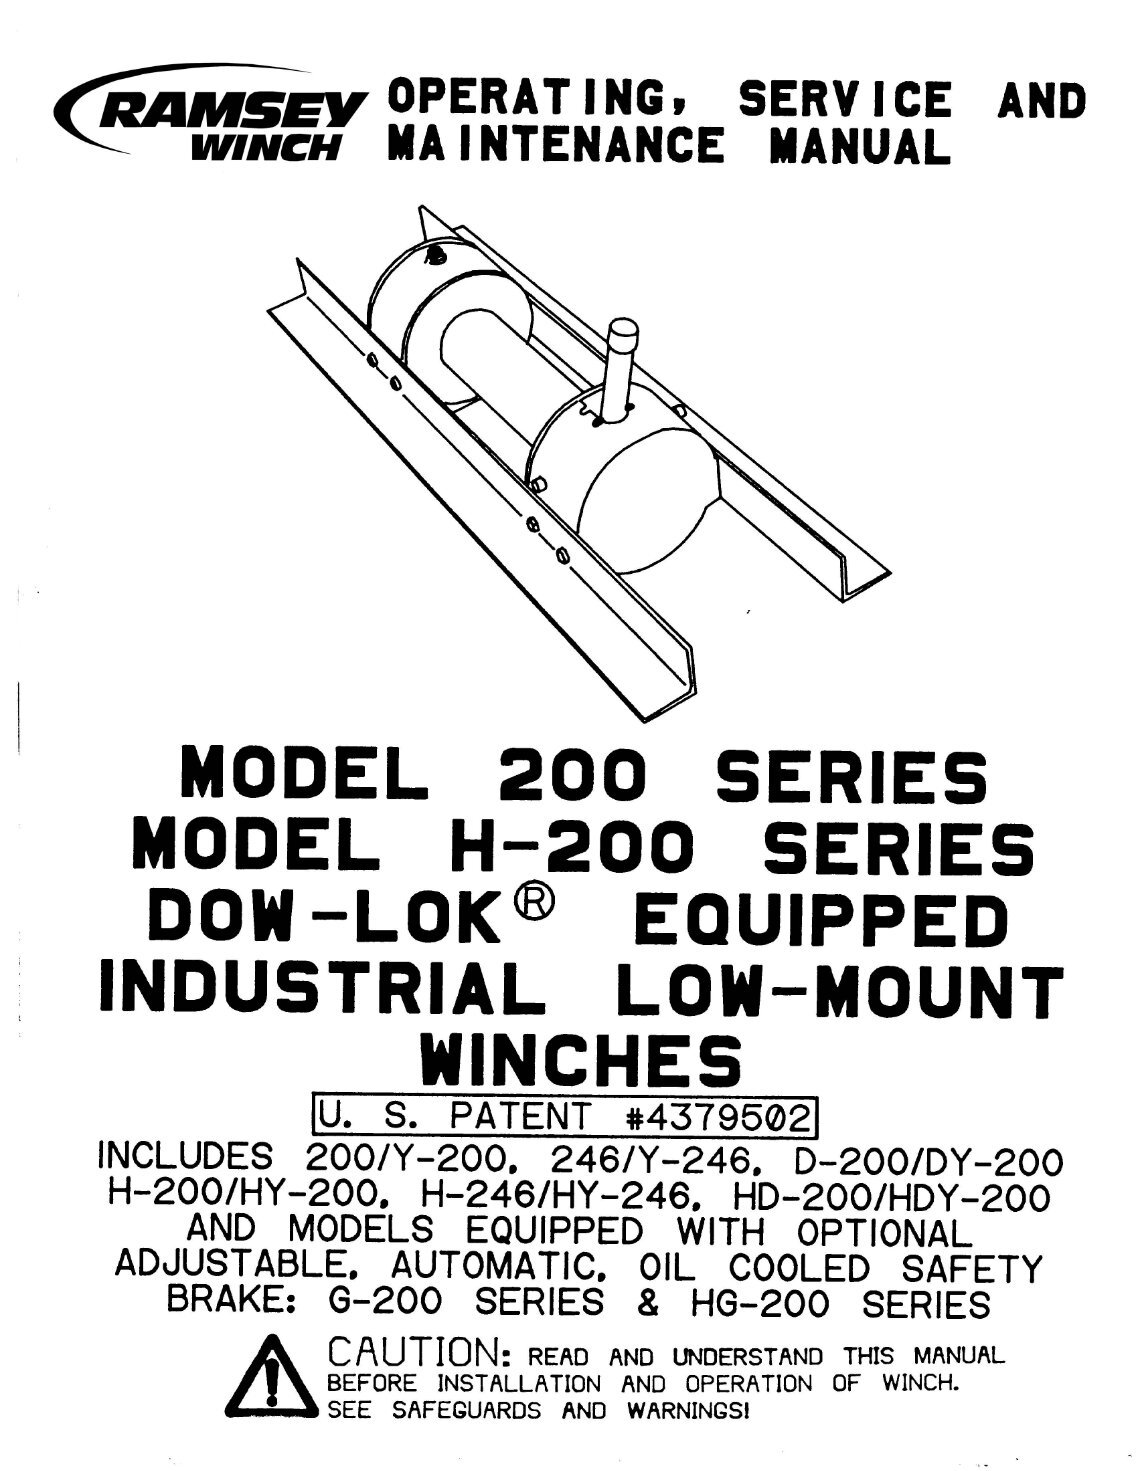 luxury electric winch wiring diagram gallery wiring diagram ideas 4x4 wiring diagram beautiful ramsey winch motor wiring diagram composition electrical